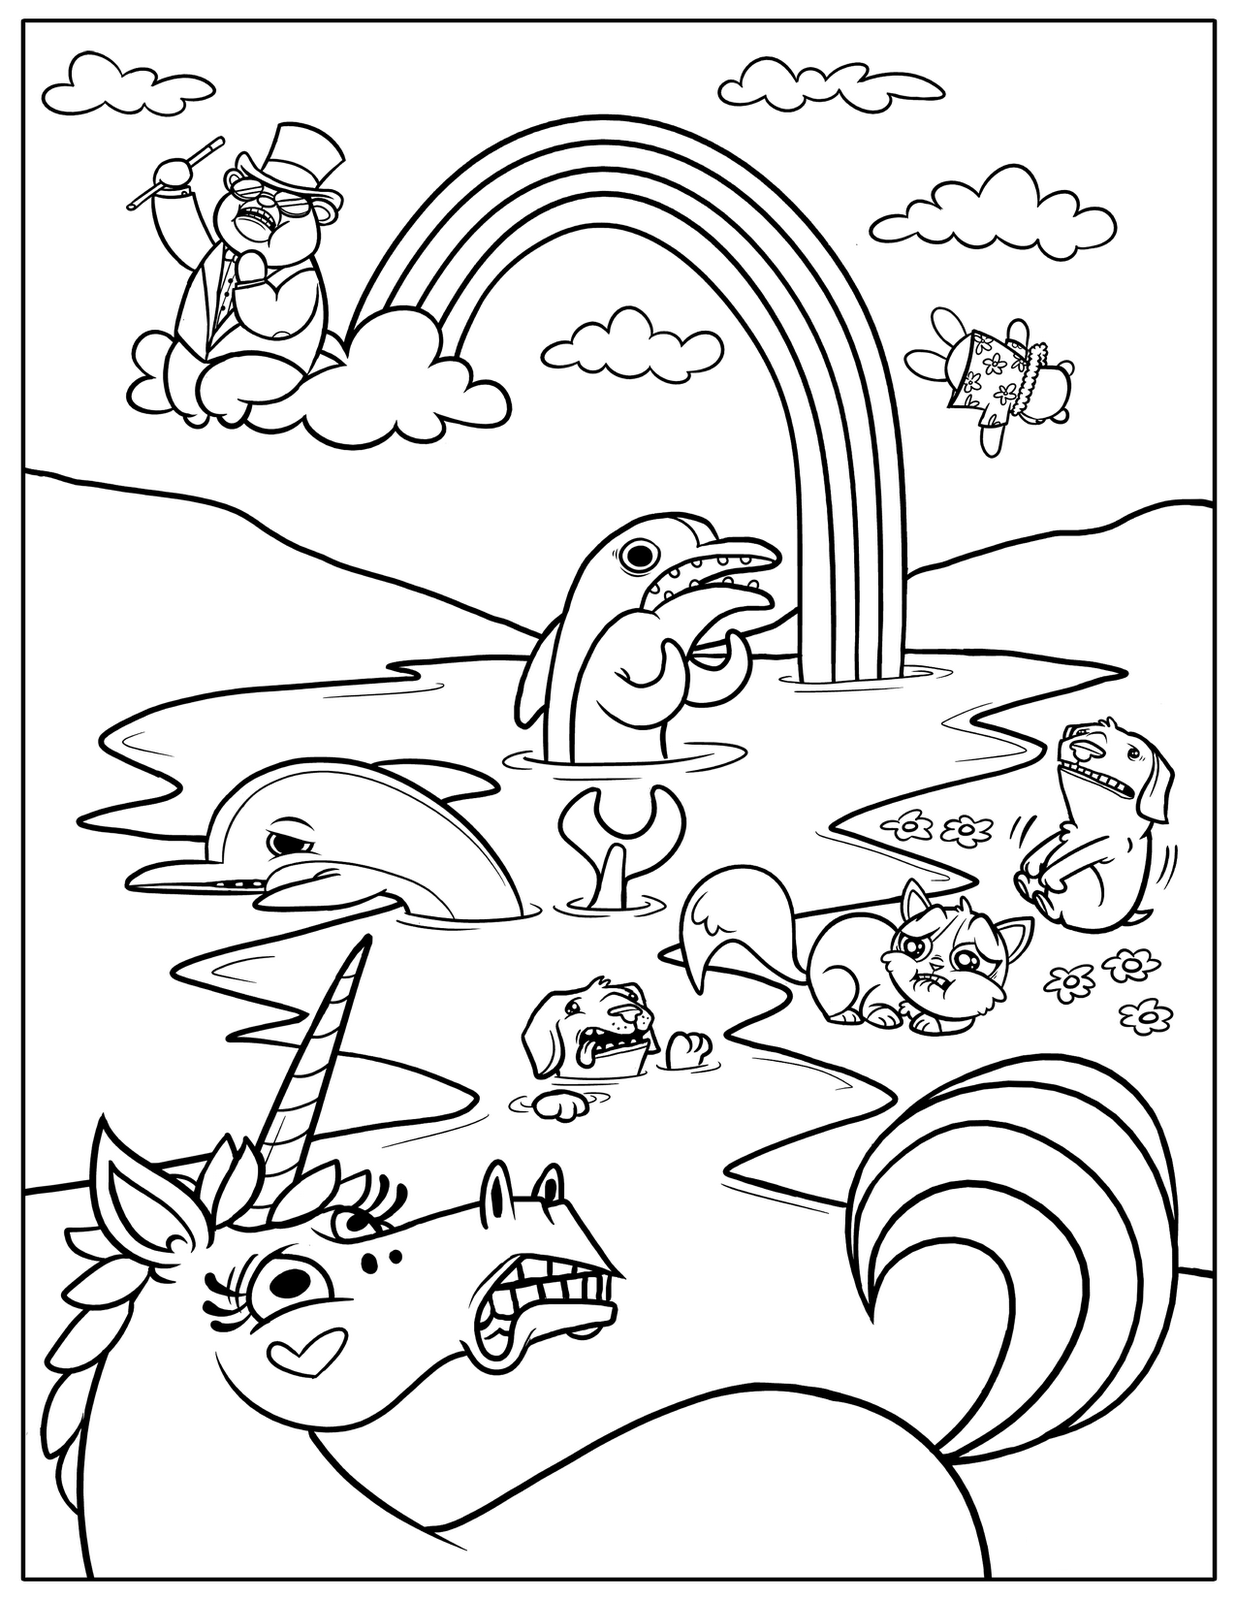 coloring rainbow pages - photo#43